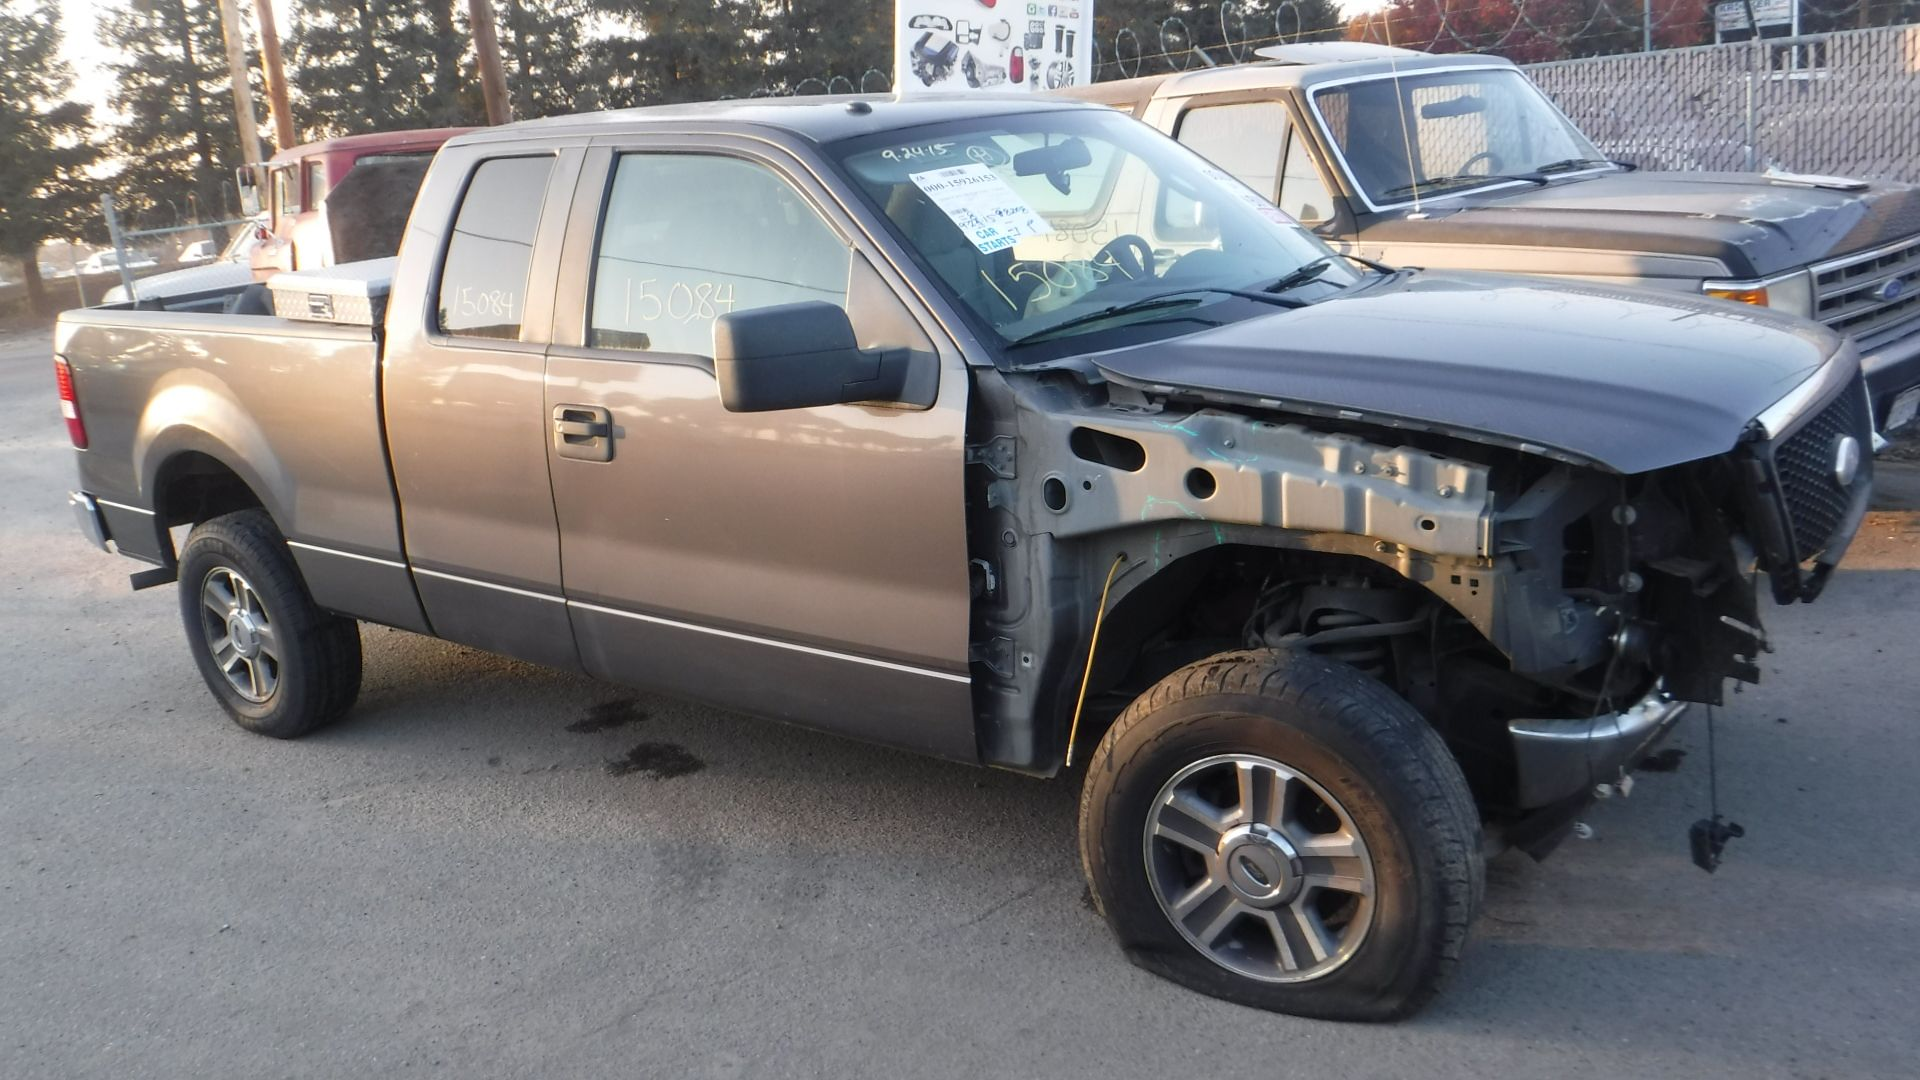 hight resolution of 2007 ford f 150 xlt supercab 4wd 5 4l with 88k miles this is